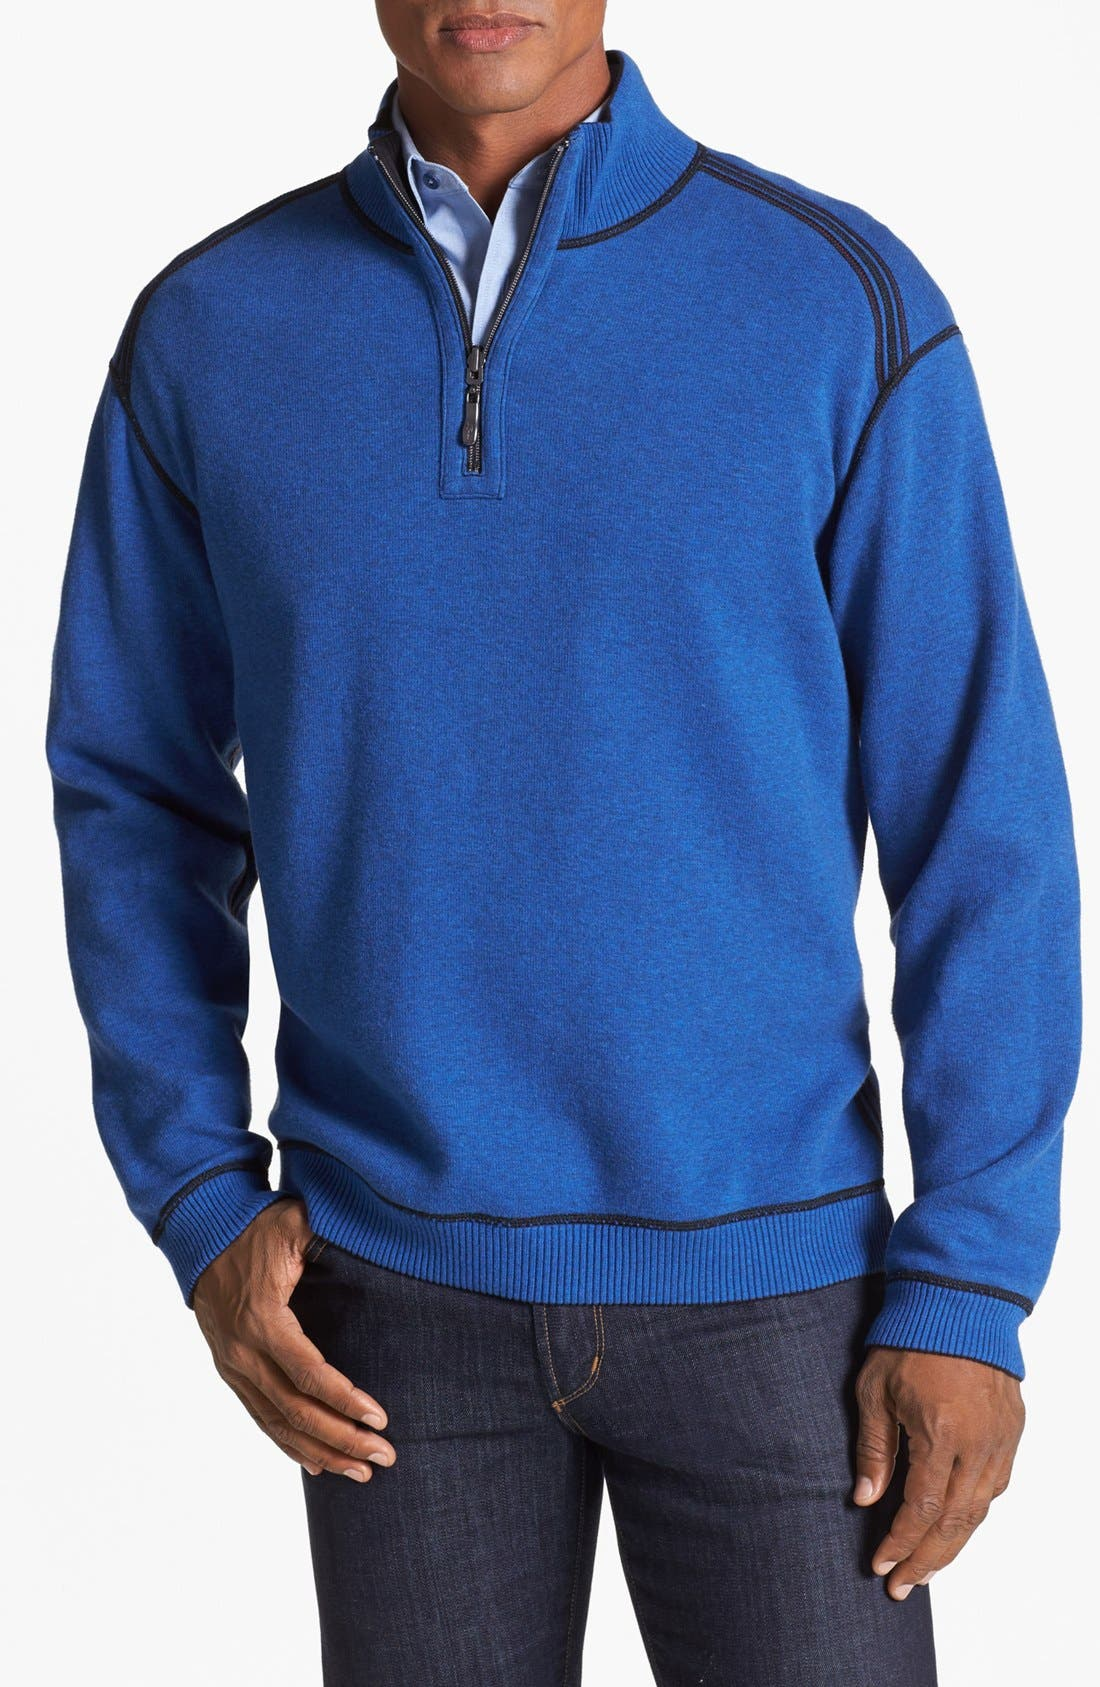 Alternate Image 2  - Tommy Bahama 'Flip Side Pro' Half Zip Pullover (Big & Tall)